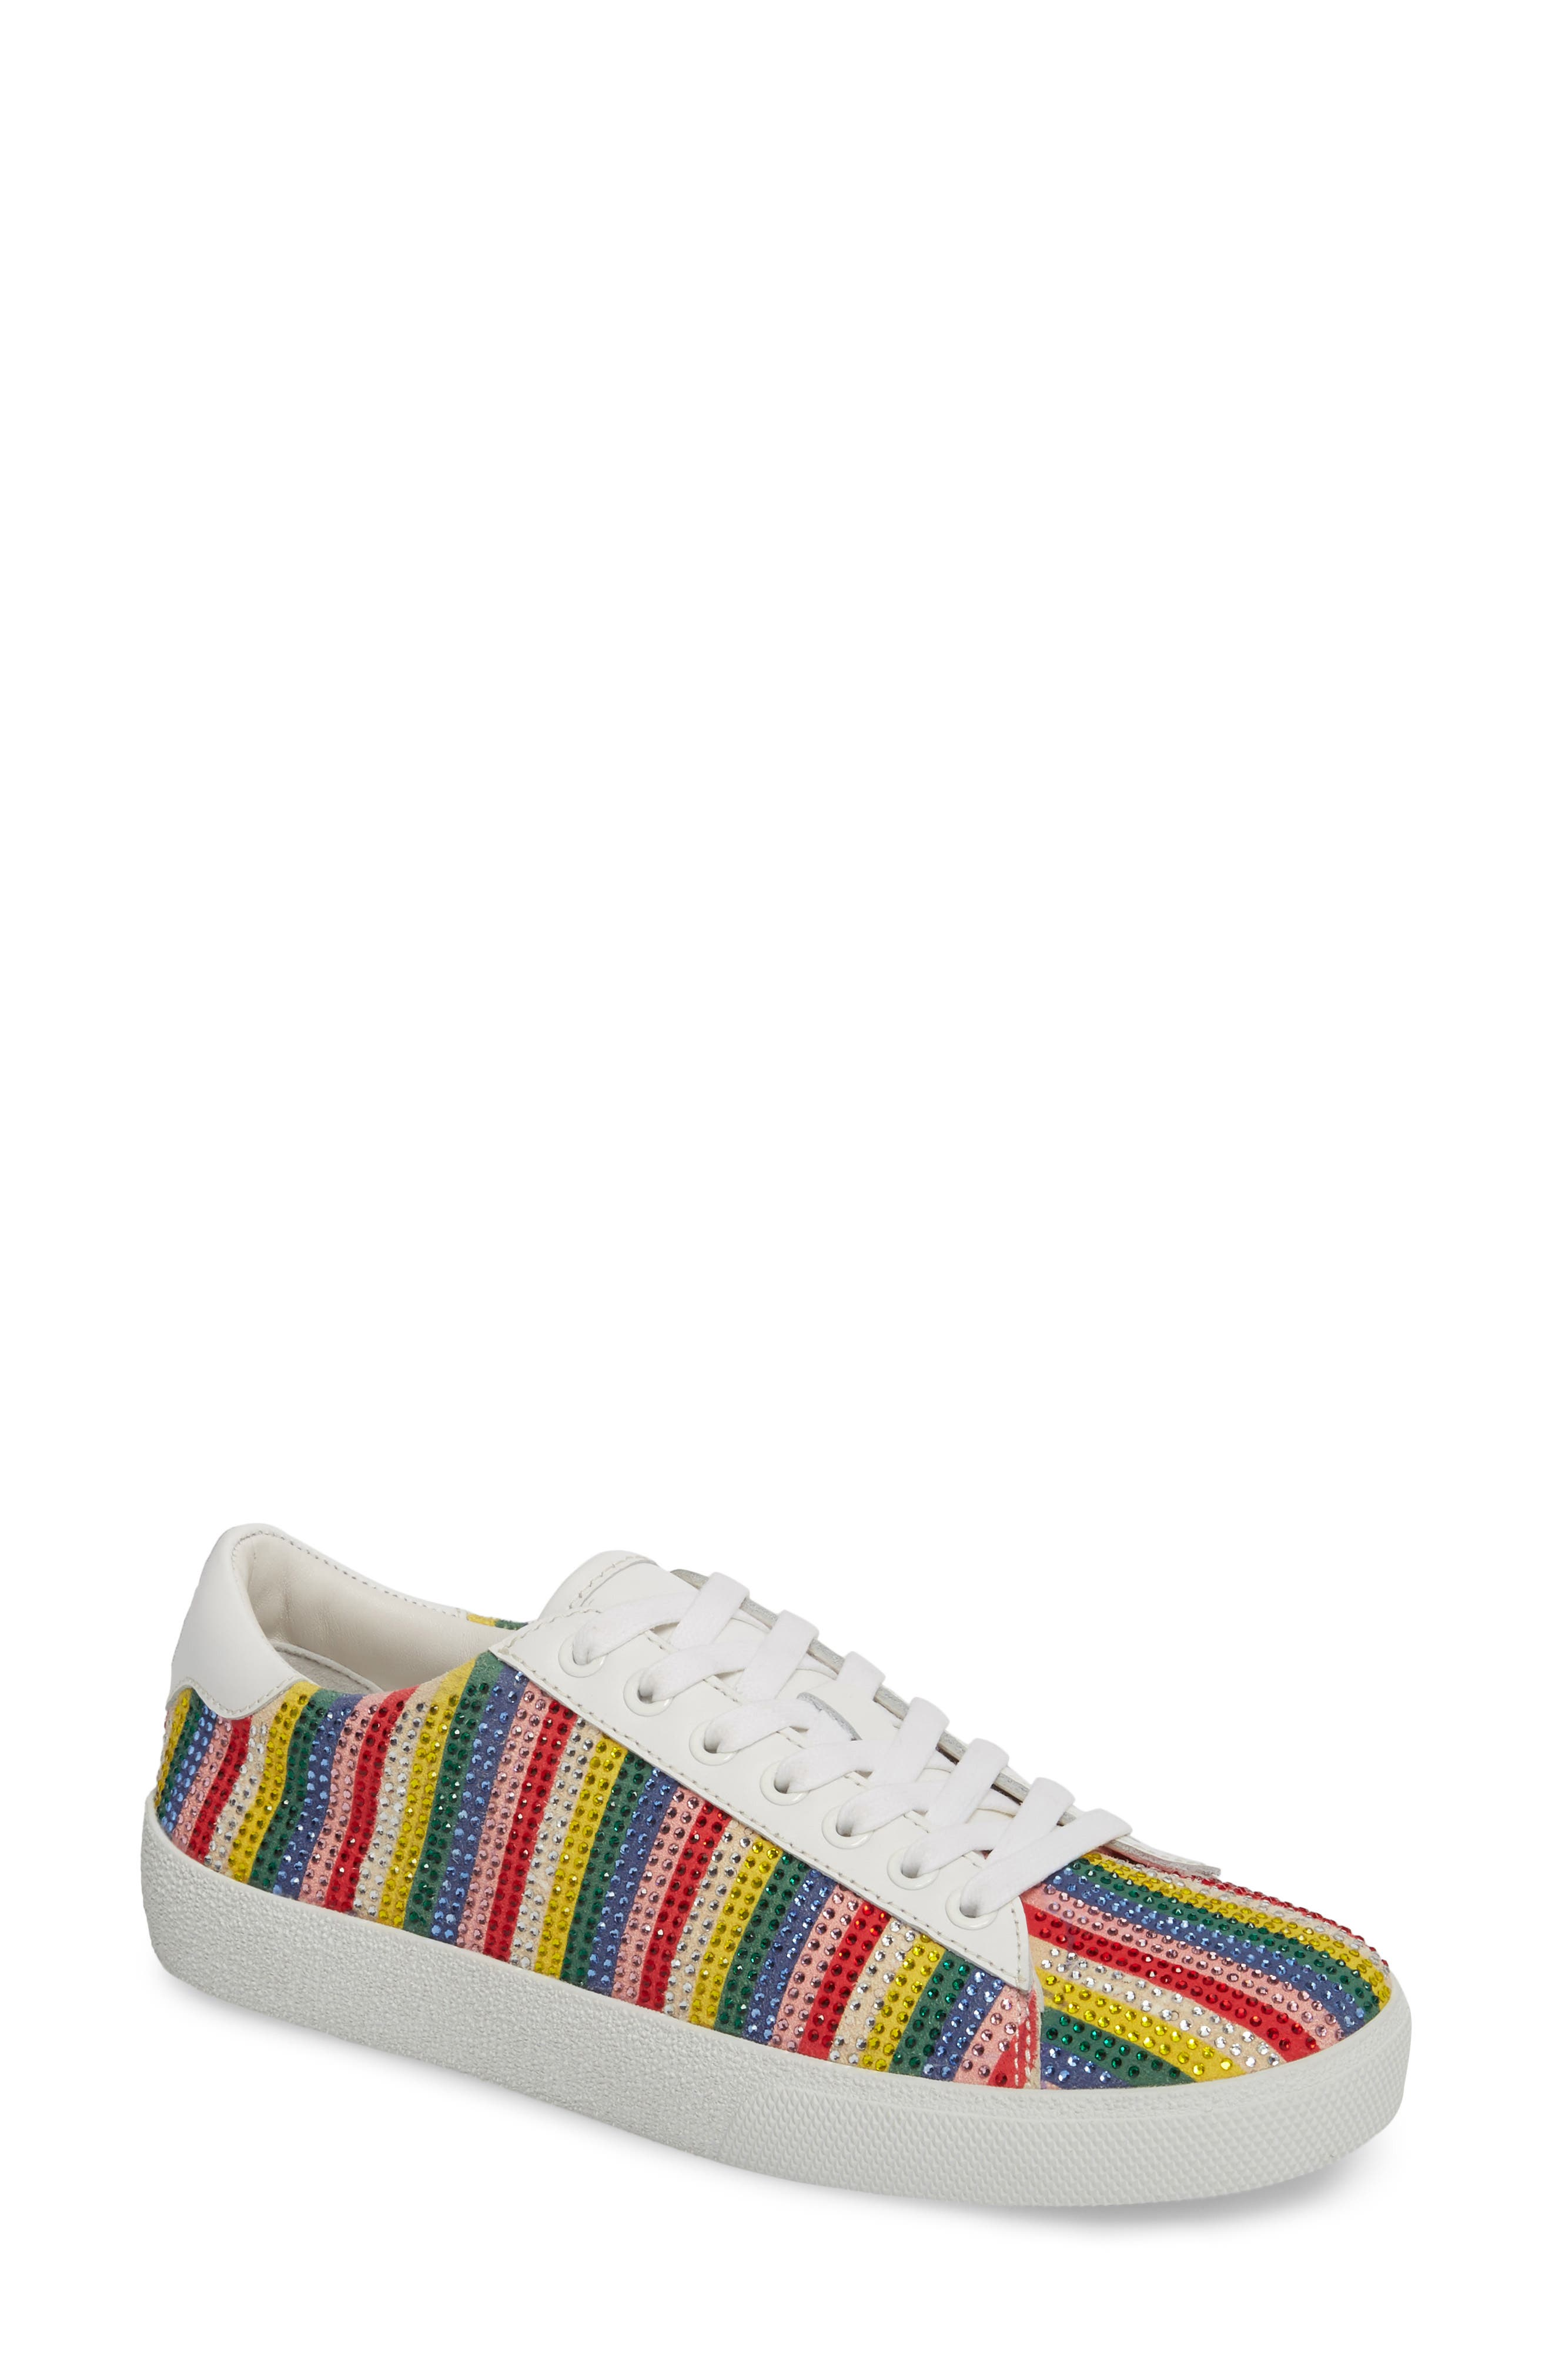 Cassidy Crystal Embellished Sneaker,                             Main thumbnail 1, color,                             Multi